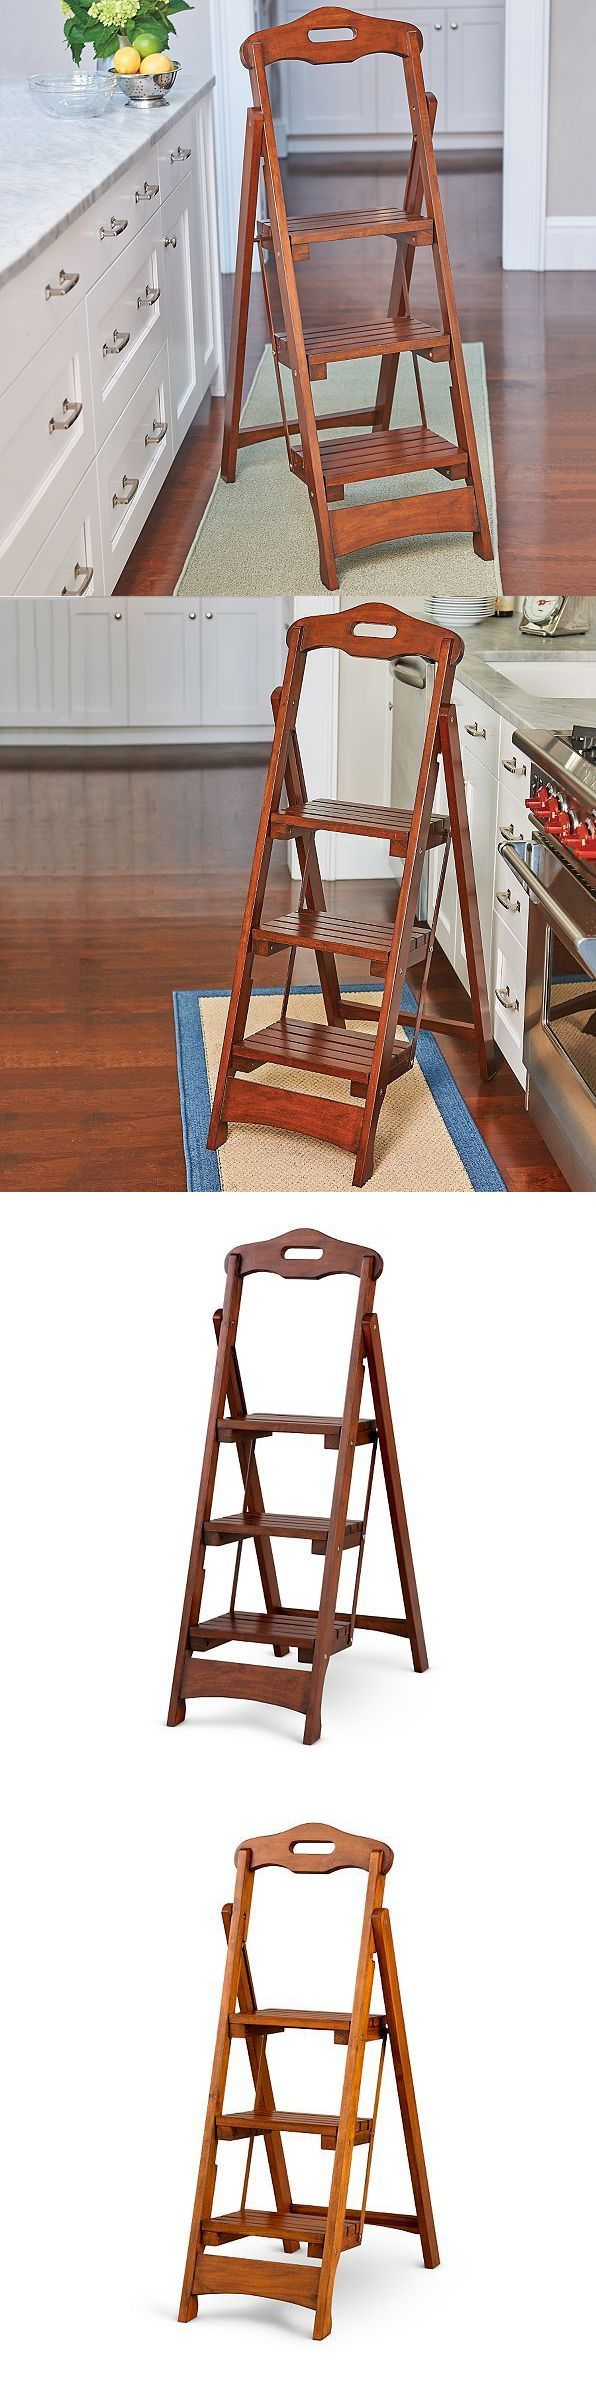 Ladders 112567 Wooden Folding Step Ladder Solid Wood Home Library Kitchen Portable 2 Colors New Buy It Now Onl Home Library Step Ladders House In The Woods